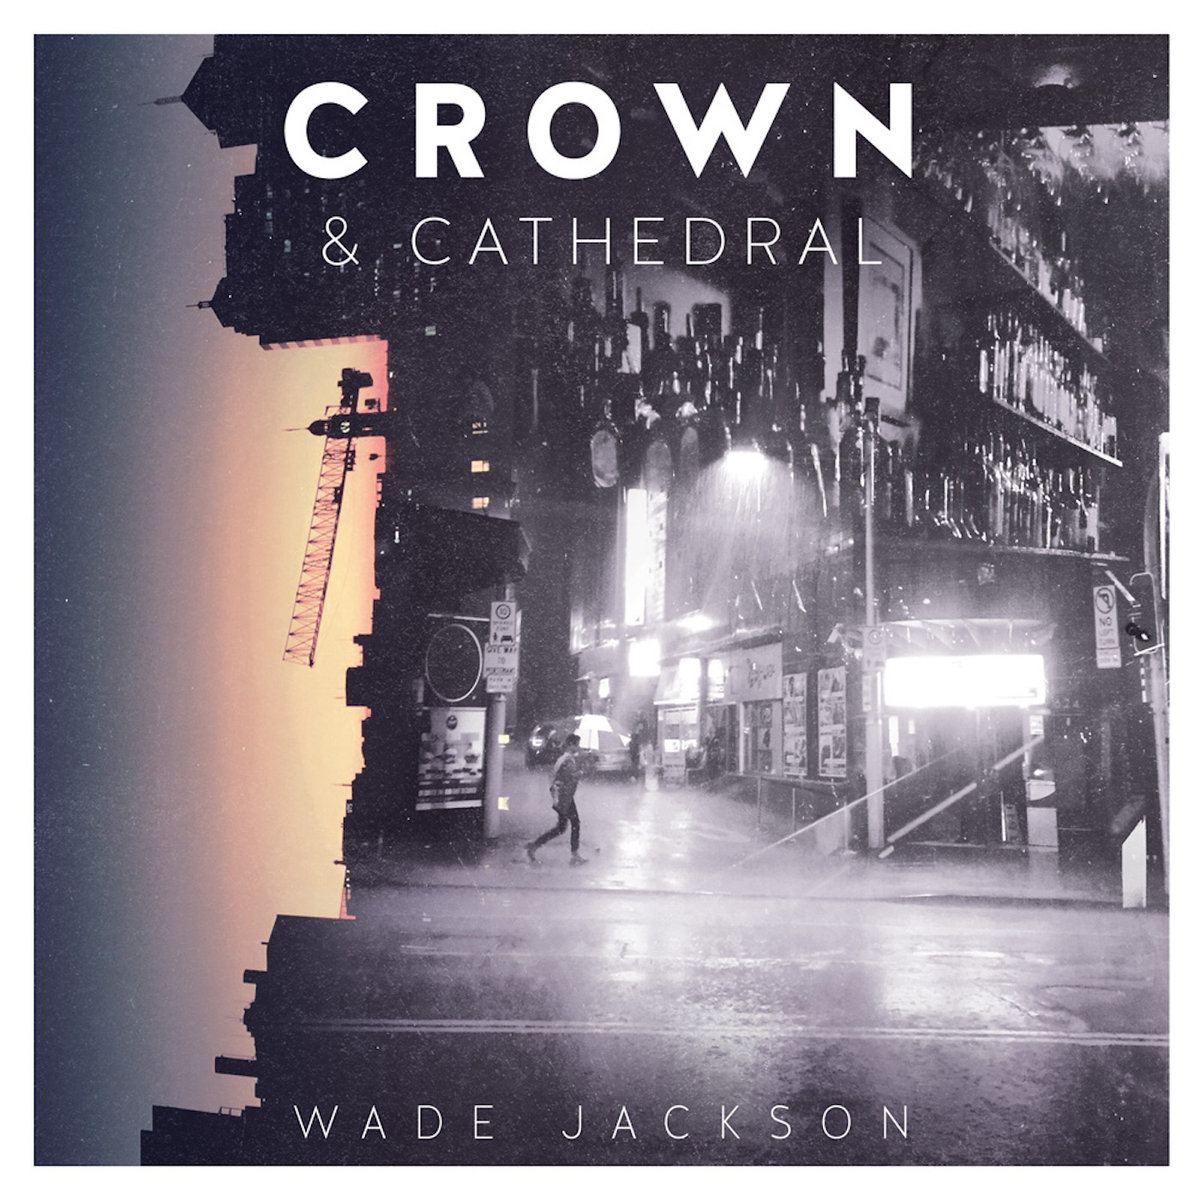 - Wade JacksonCrown & Cathedral (Album - 2017)MixingChoice cut - Exist